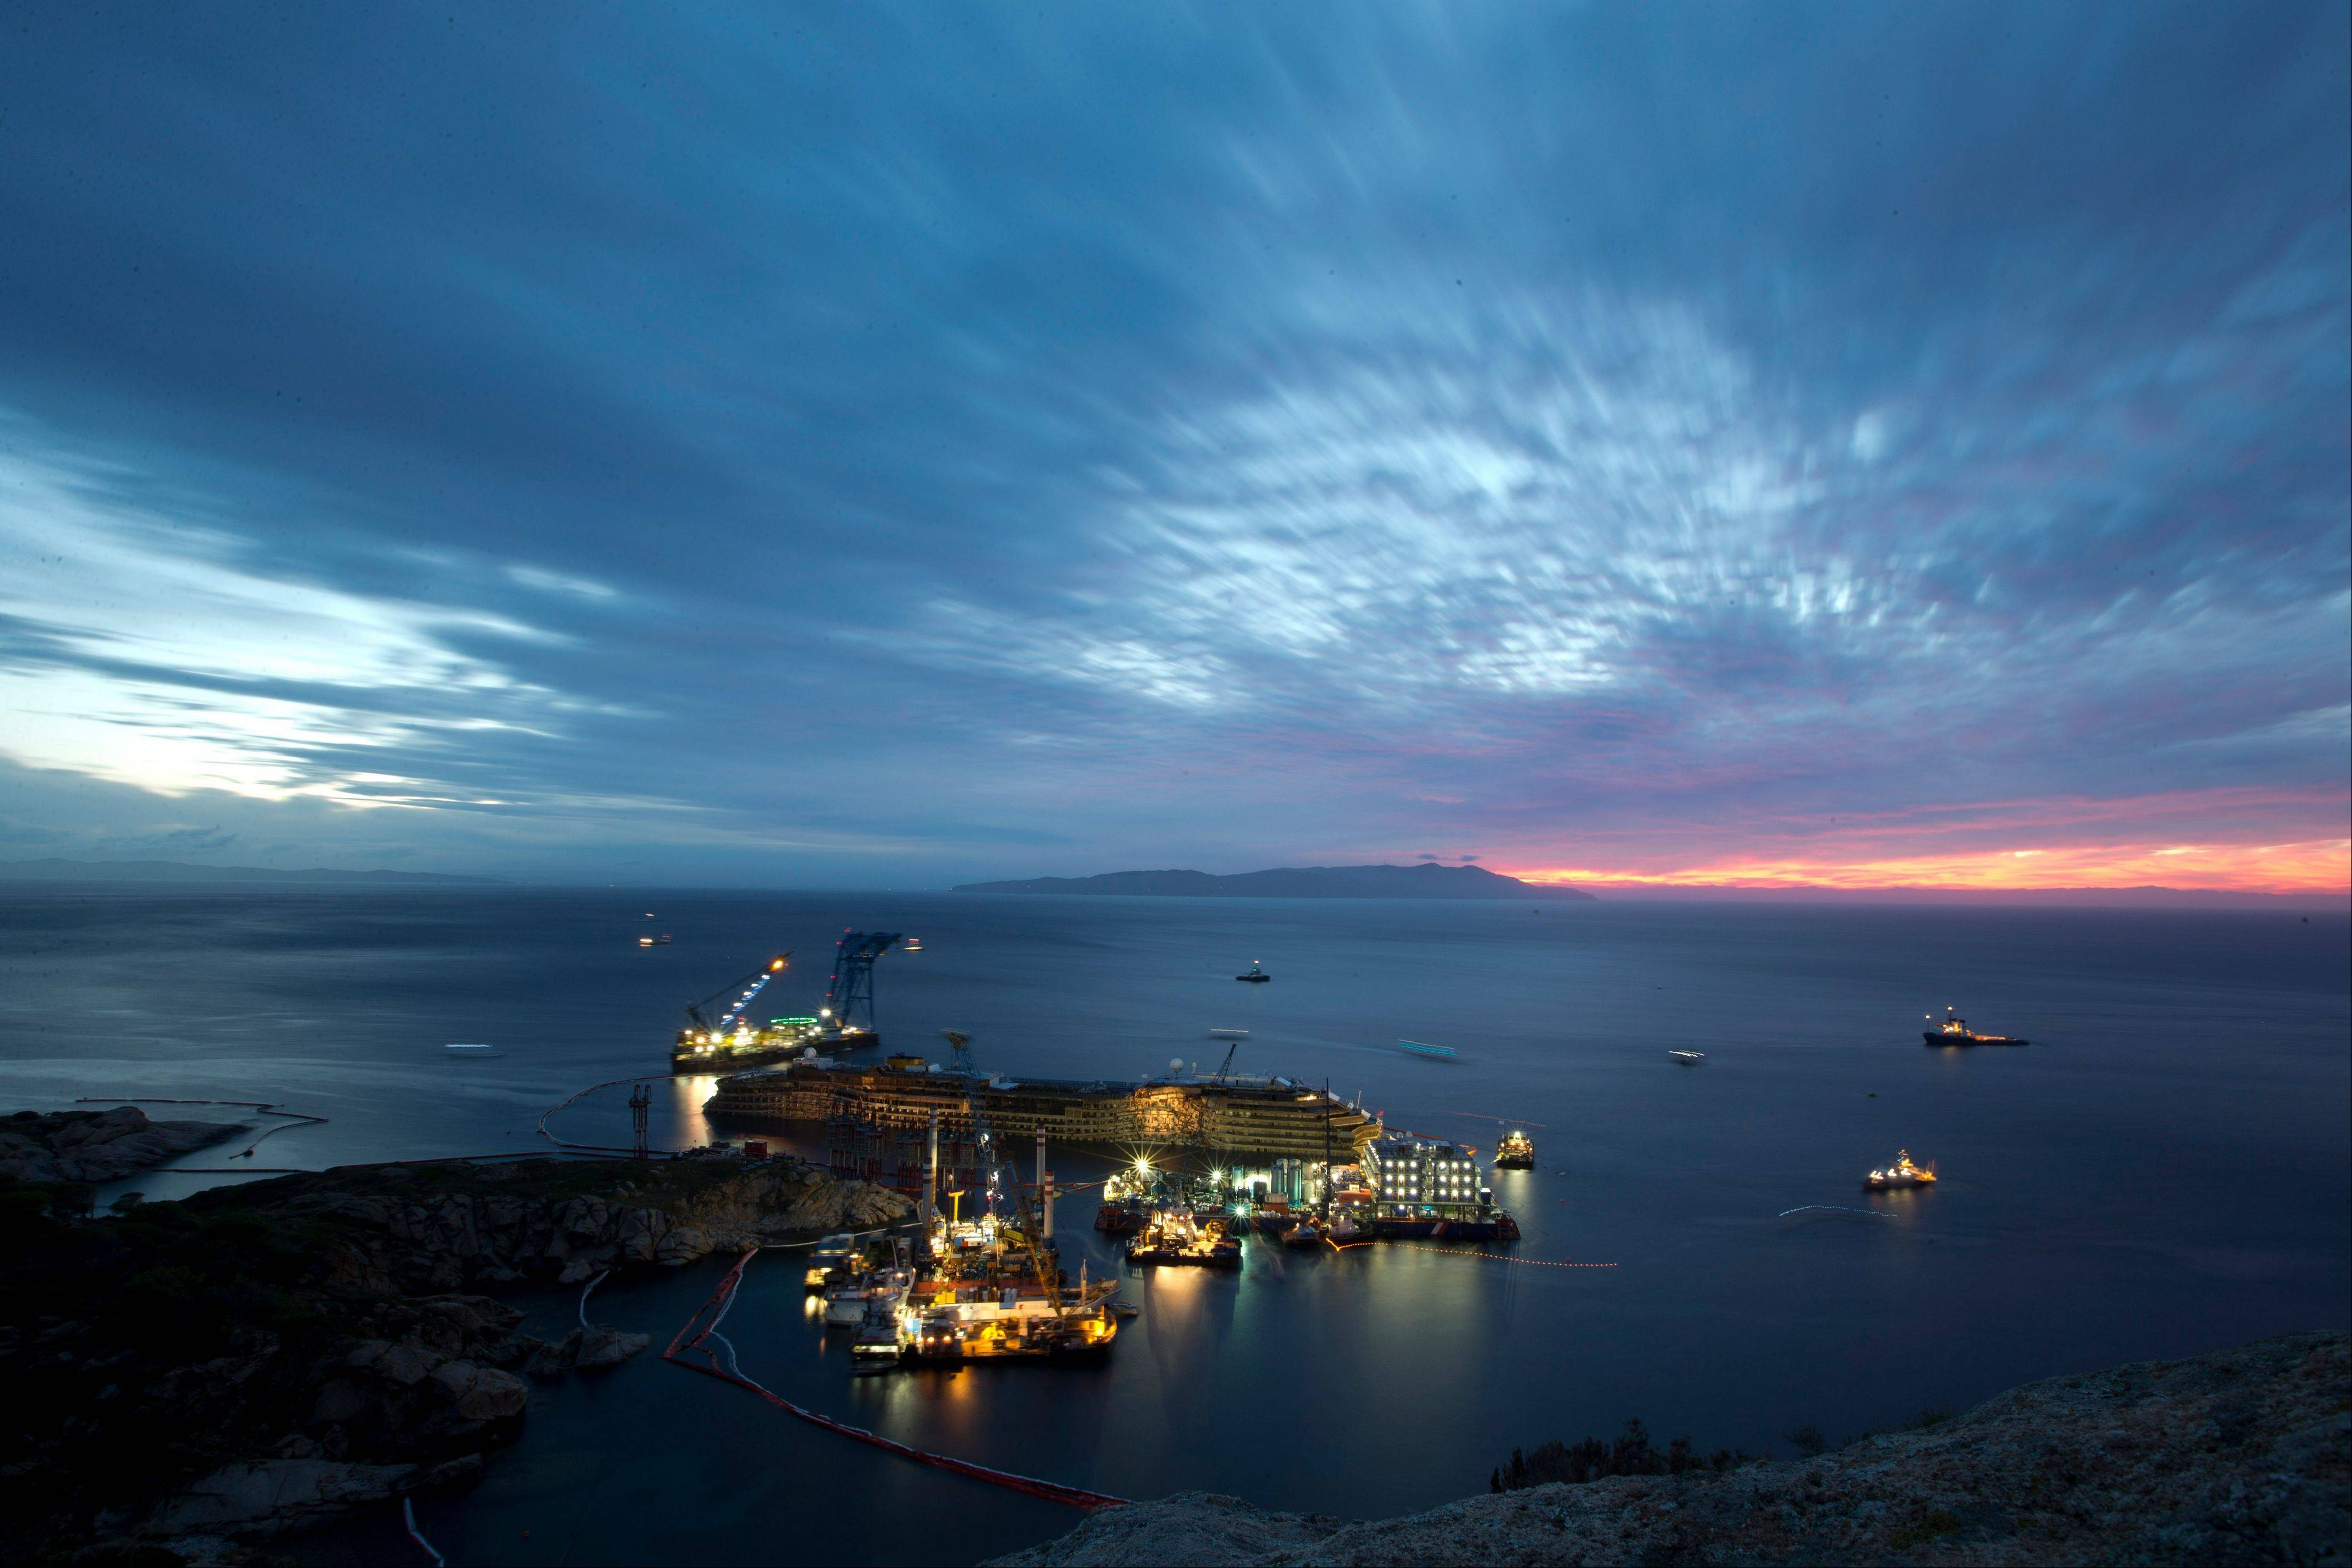 "The Costa Concordia is seen after it was lifted upright on the Tuscan Island of Giglio, Italy, early Tuesday morning, Sept. 17, 2013. The crippled cruise ship was pulled completely upright early Tuesday after a complicated, 19-hour operation to wrench it from its side where it capsized last year off Tuscany, with officials declaring it a ""perfect"" end to a daring and unprecedented engineering feat."